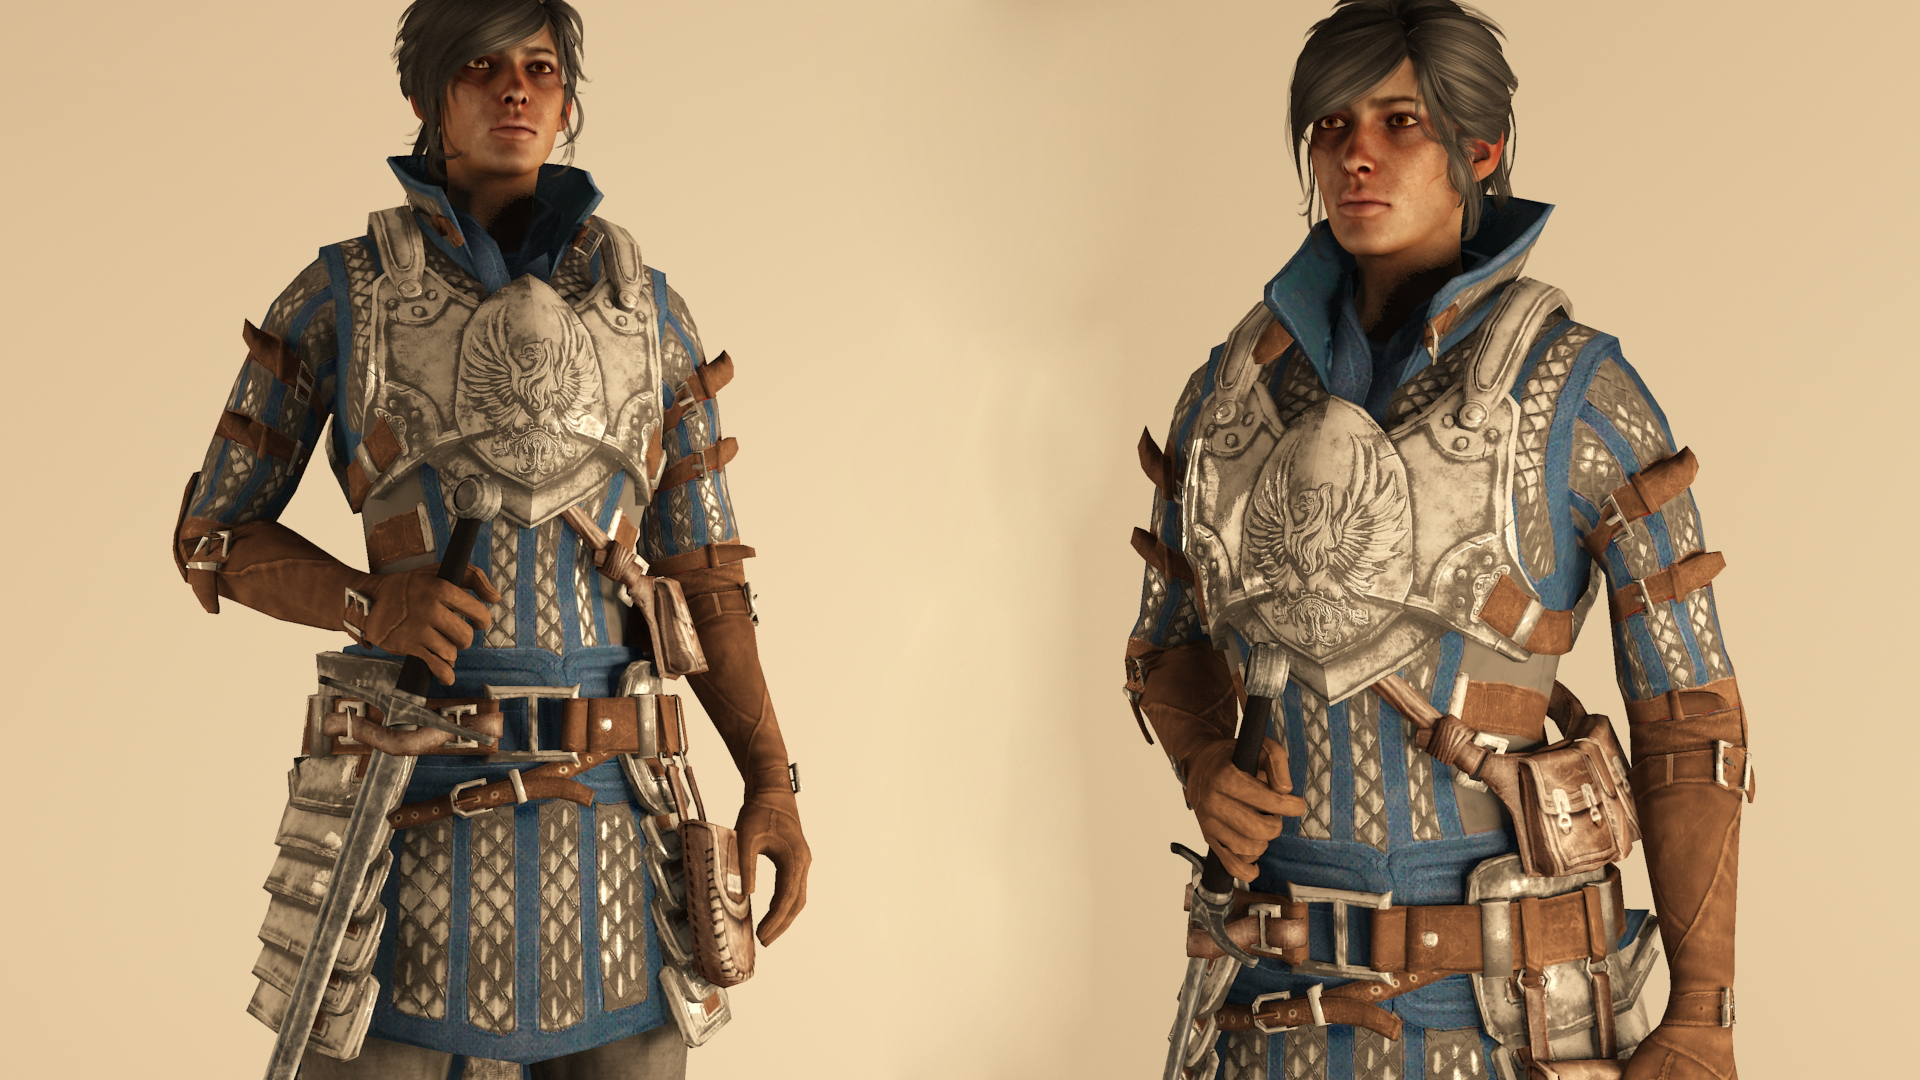 Warden-Commander Cousland -  Armor Outfit by raubkruemel